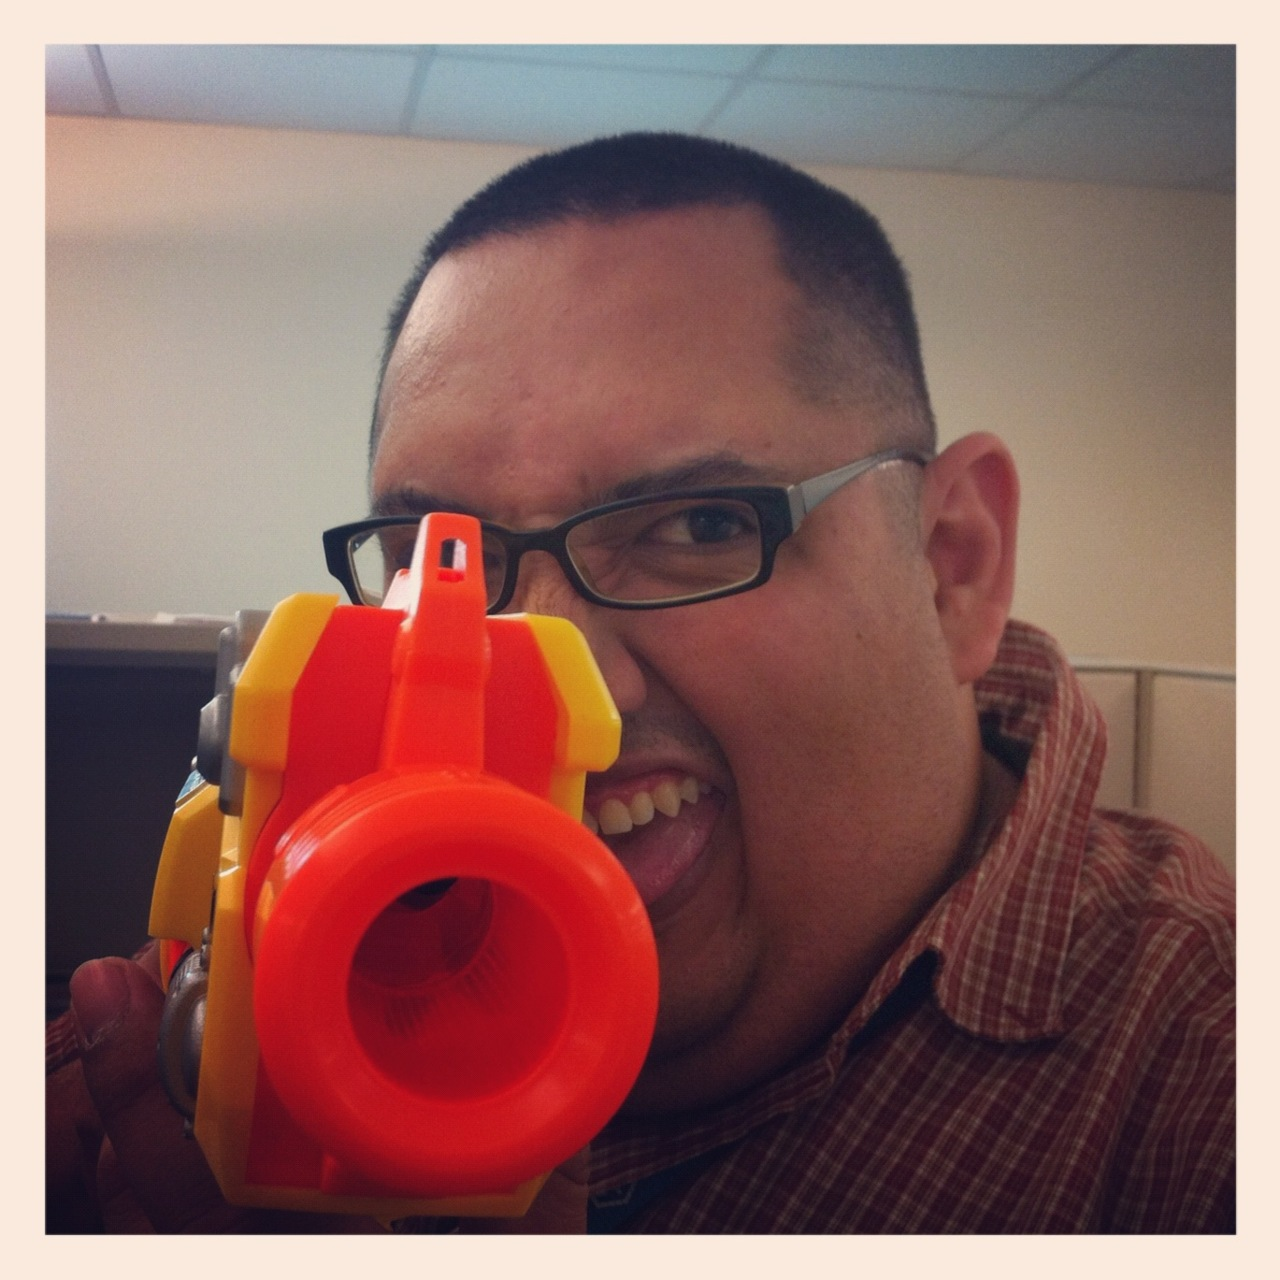 With both my work week and my time with METC at FT. Sam Houston coming to a close… I decided to bring the NERF gun into work today and lit up a couple of co-workers.   There's talk of a NERF war between 6AM and 7AM tomorrow before we start the work day.  More on this tomorrow…